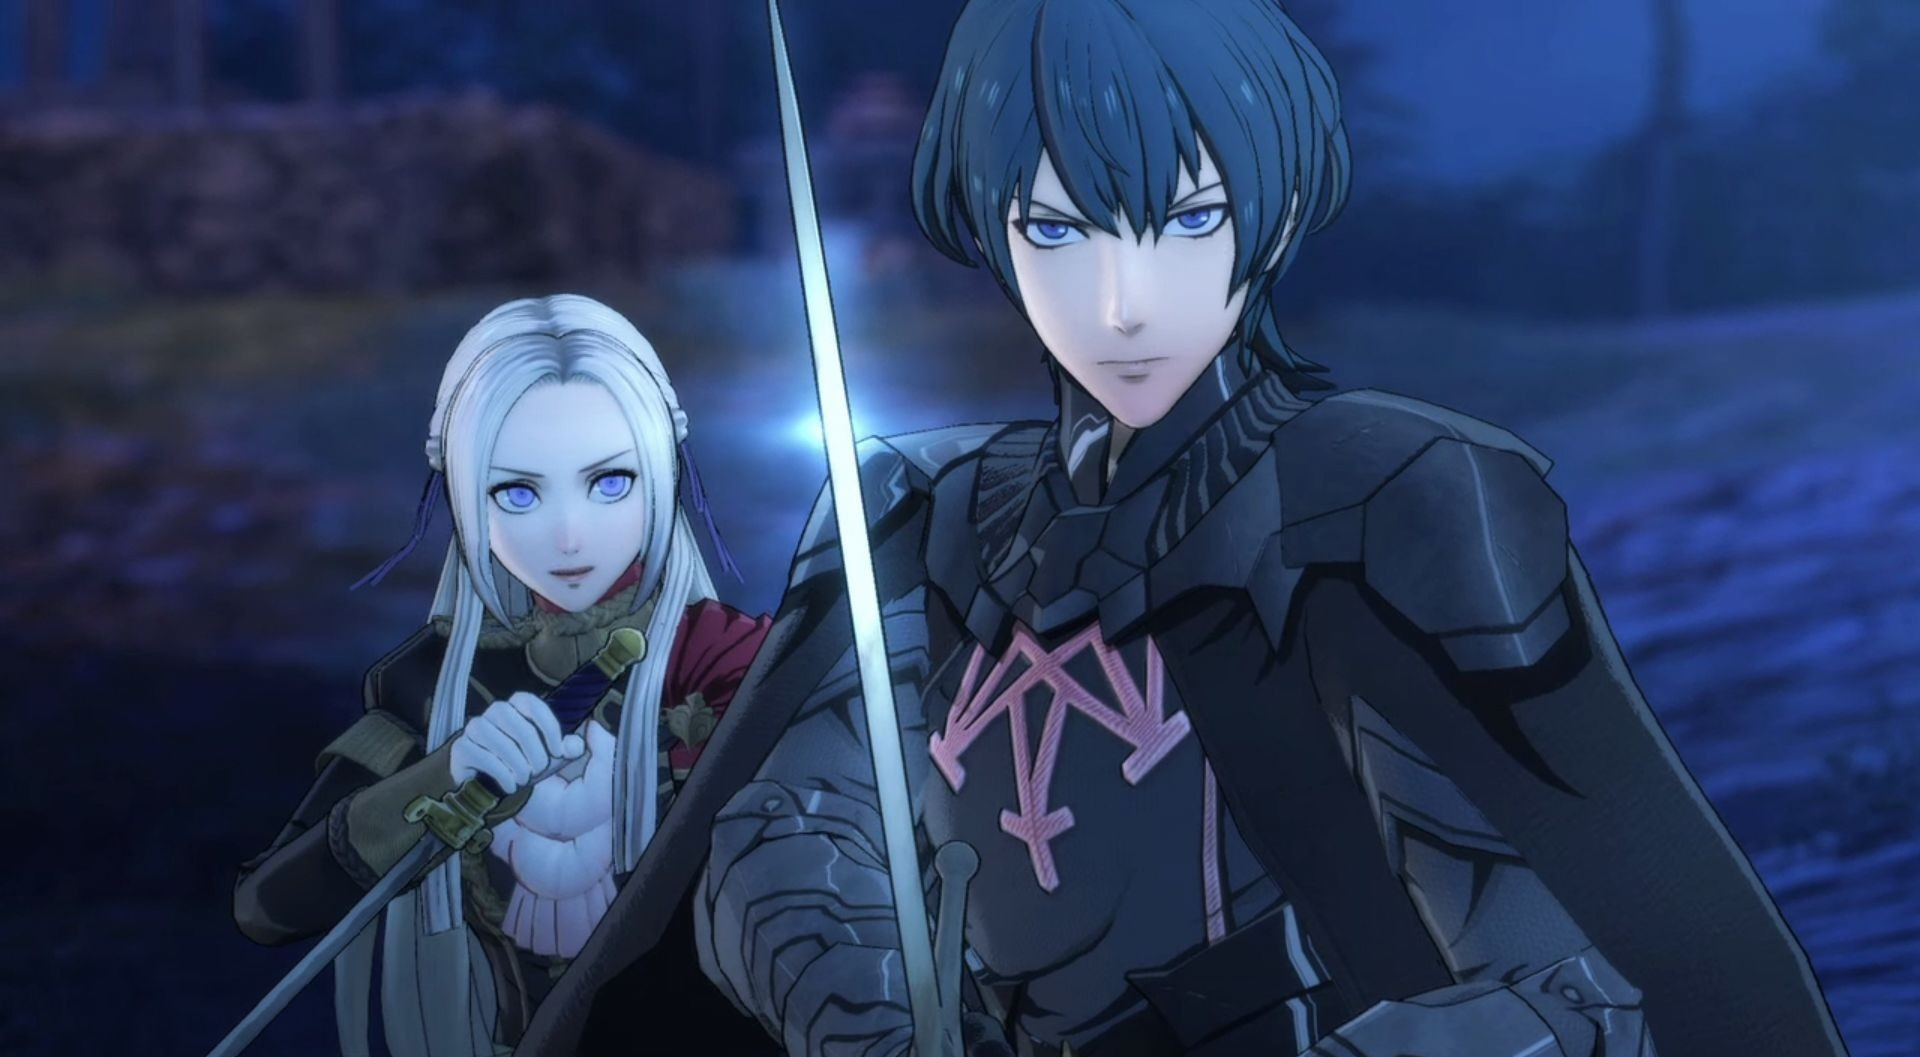 Fire Emblem: Three Houses Update Now Available, what's new in the updated version?